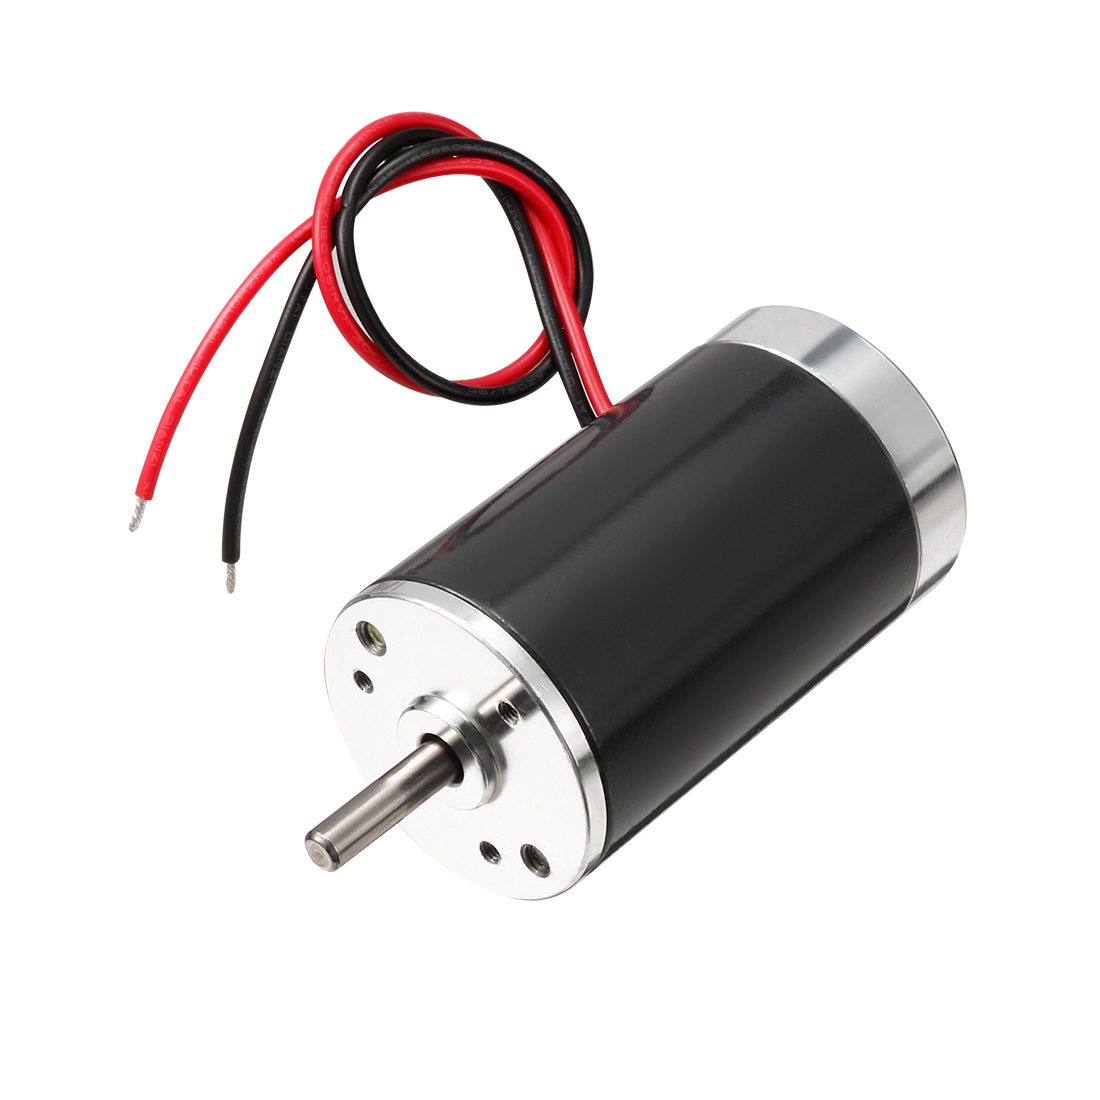 DC 24V 5000 RPM 7W Power 5mm Dia Shaft Wired Connector Metal Electric Motor